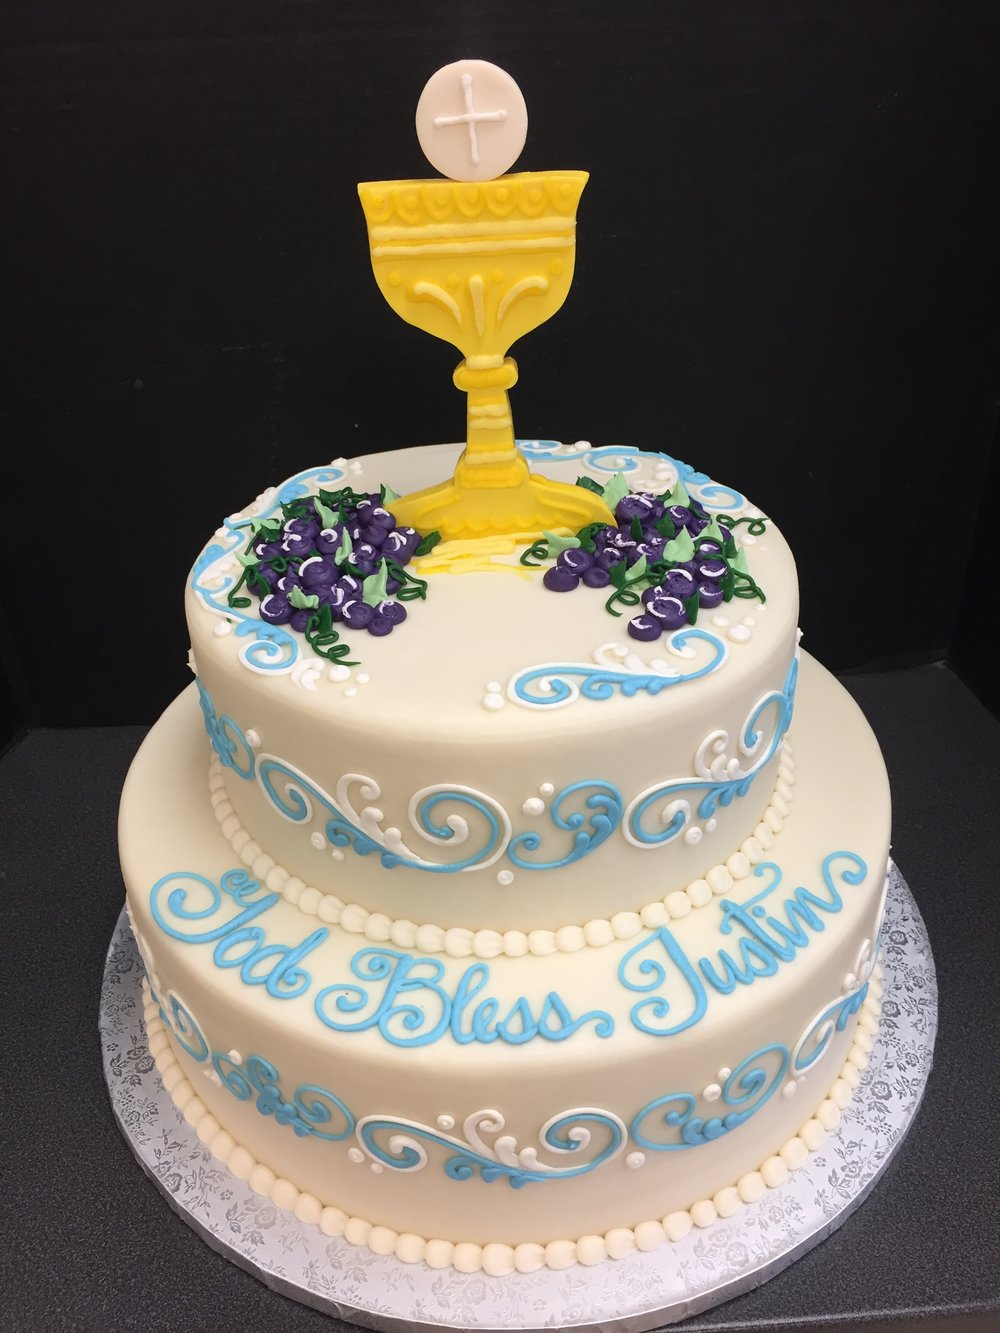 2 Tier with Cross and Grapes